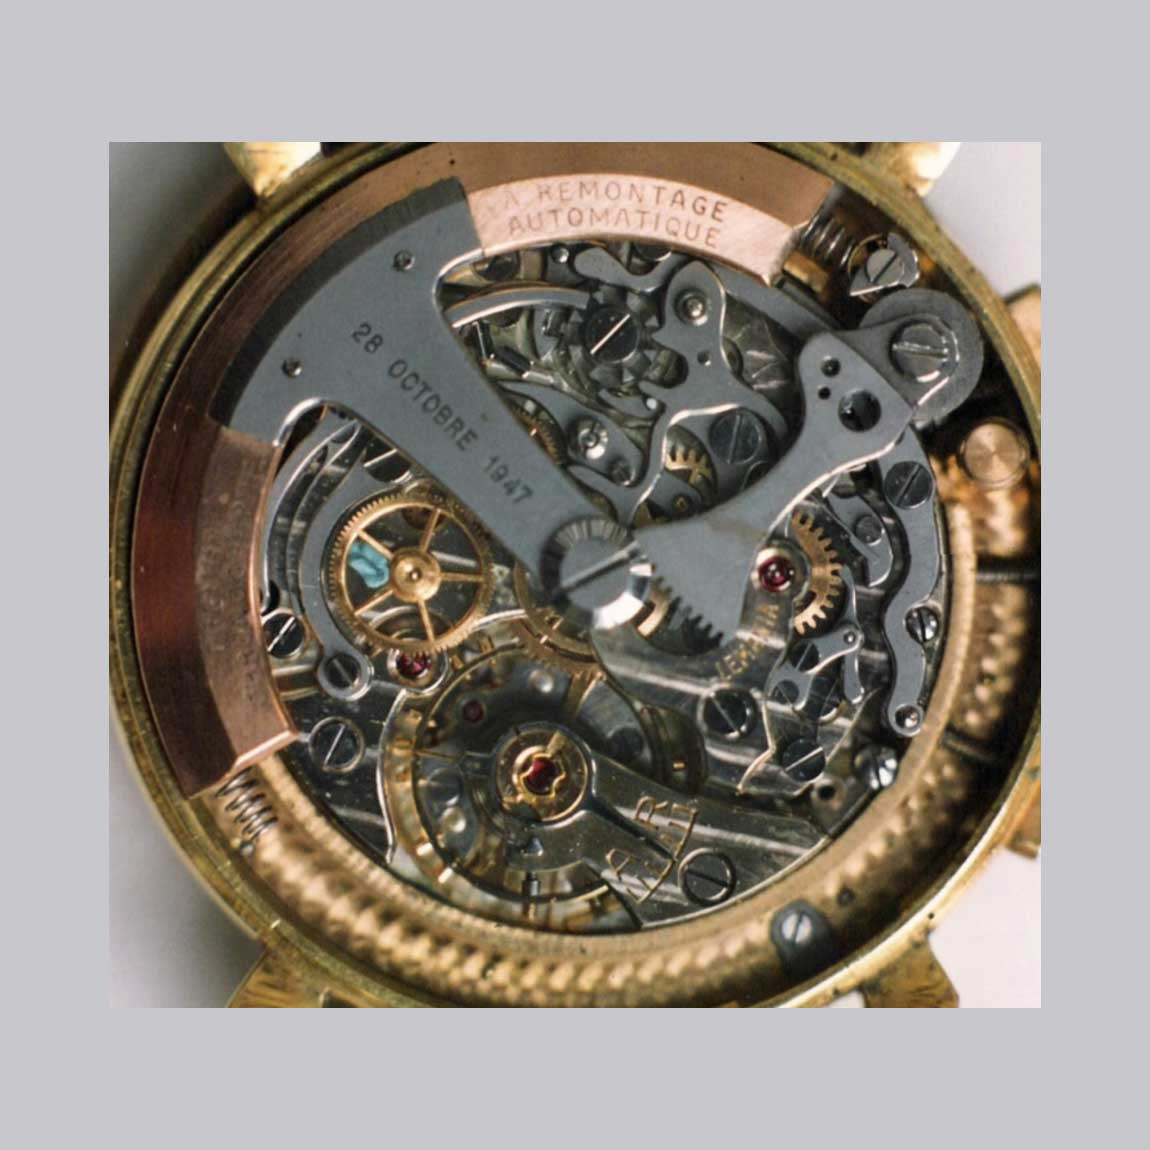 Long before the birth of the 1969 birth of the automatic chronograph movement, the prototype Lemania 2310 self-winding movements may very well have been the world's very first automatic chronograph movements (Image: Northernman from omegaforums.net)